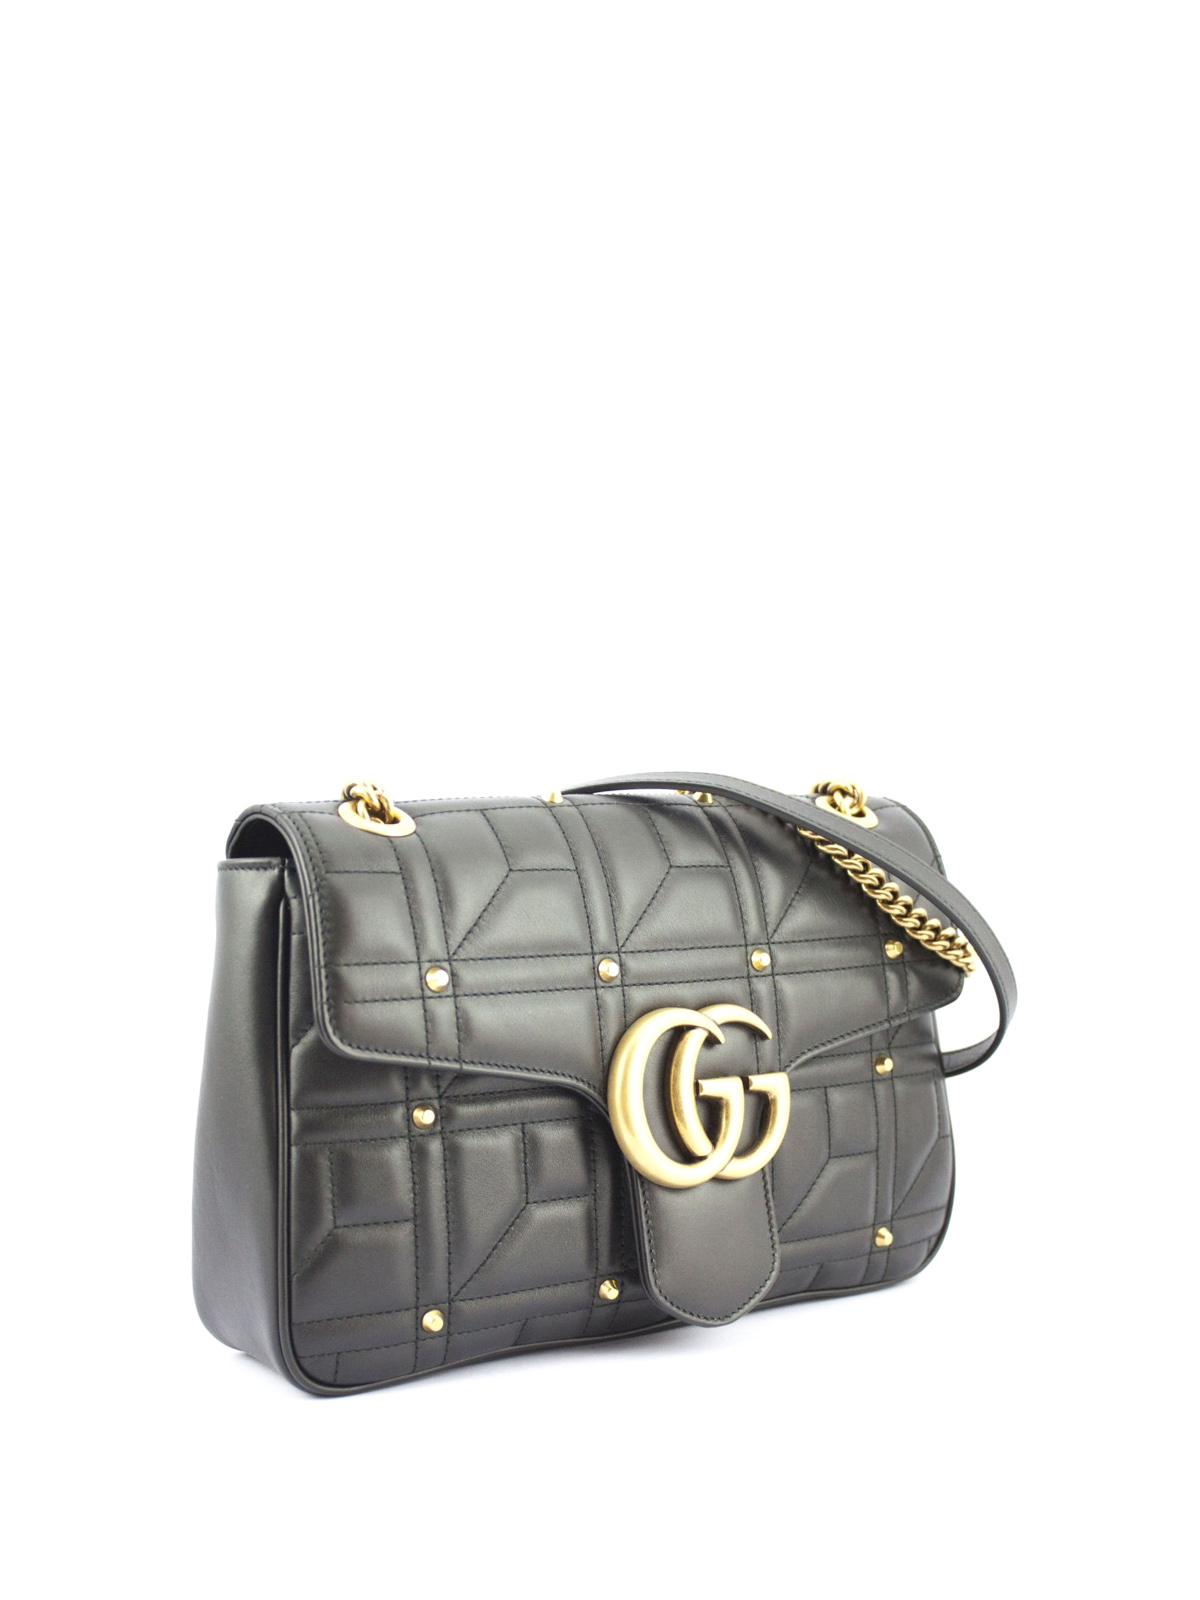 76734e842c6187 GUCCI: shoulder bags online - GG Marmont matelassé leather bag